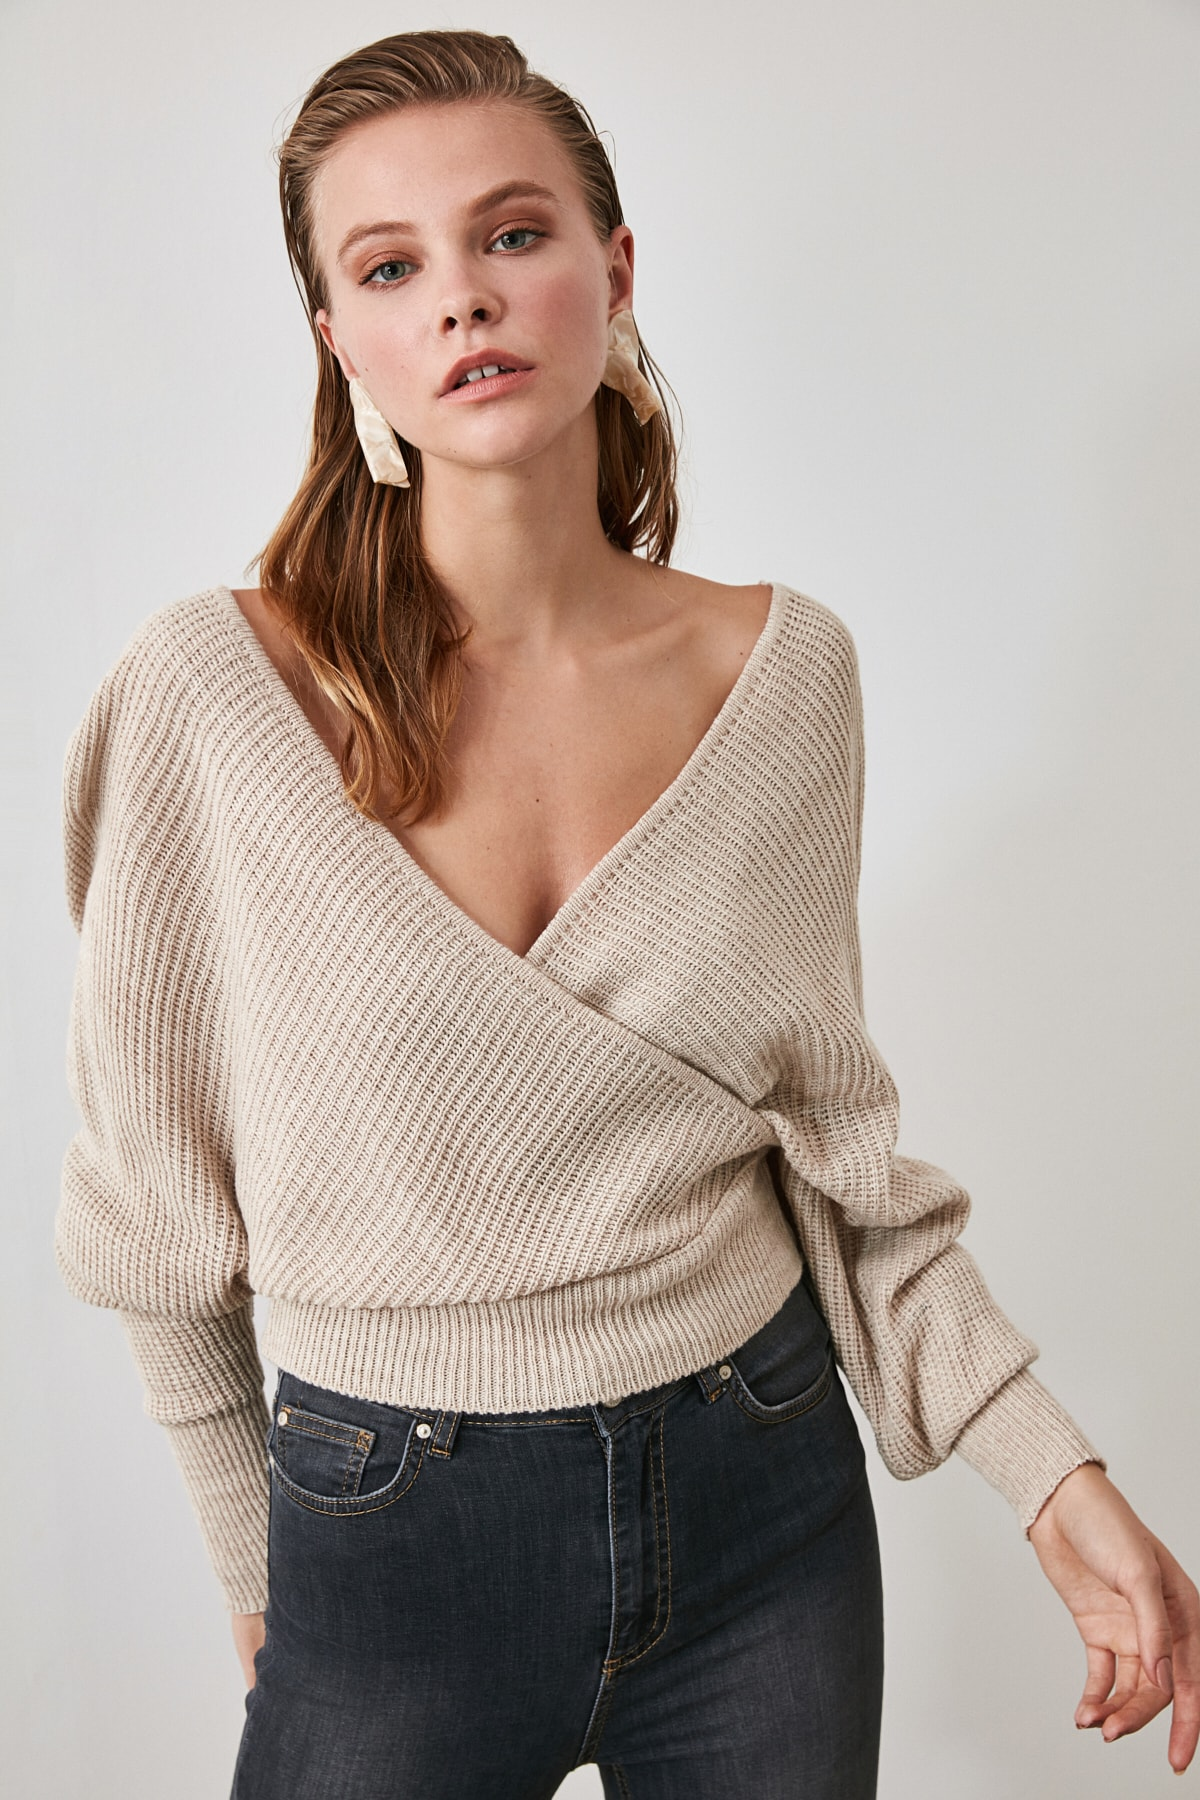 Trendyol Double Breasted Mesh Detailed Knitwear Sweater TWOAW21KZ1277